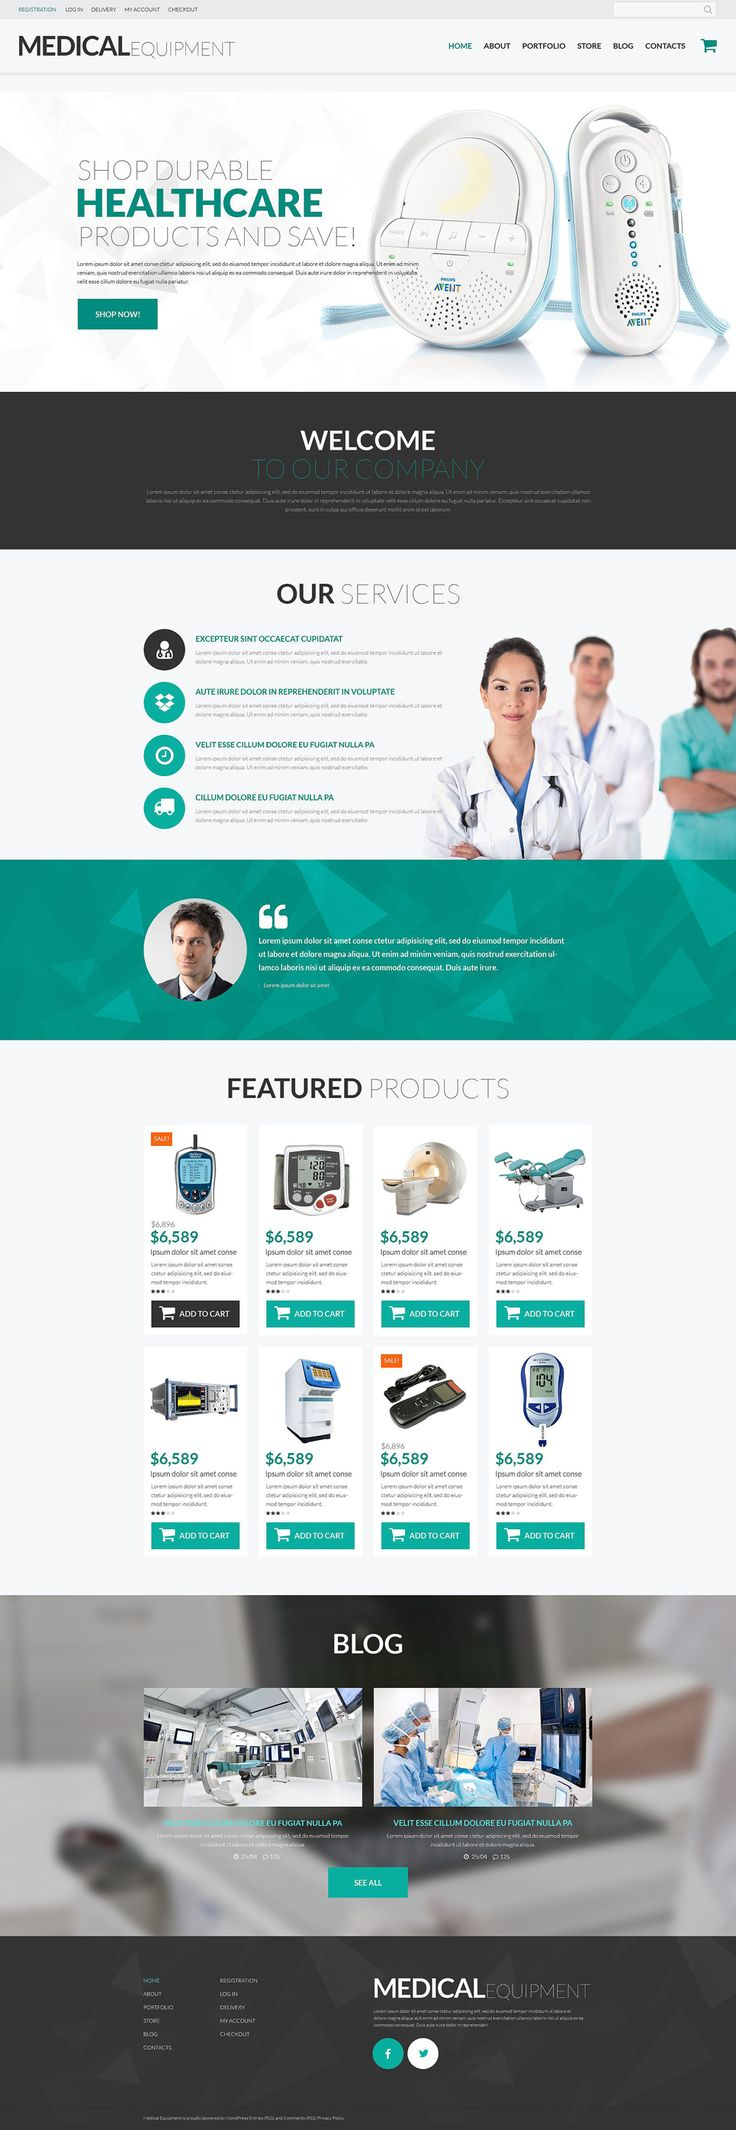 25 best ideas about Medical Equipment – Medical Equipment Repairer